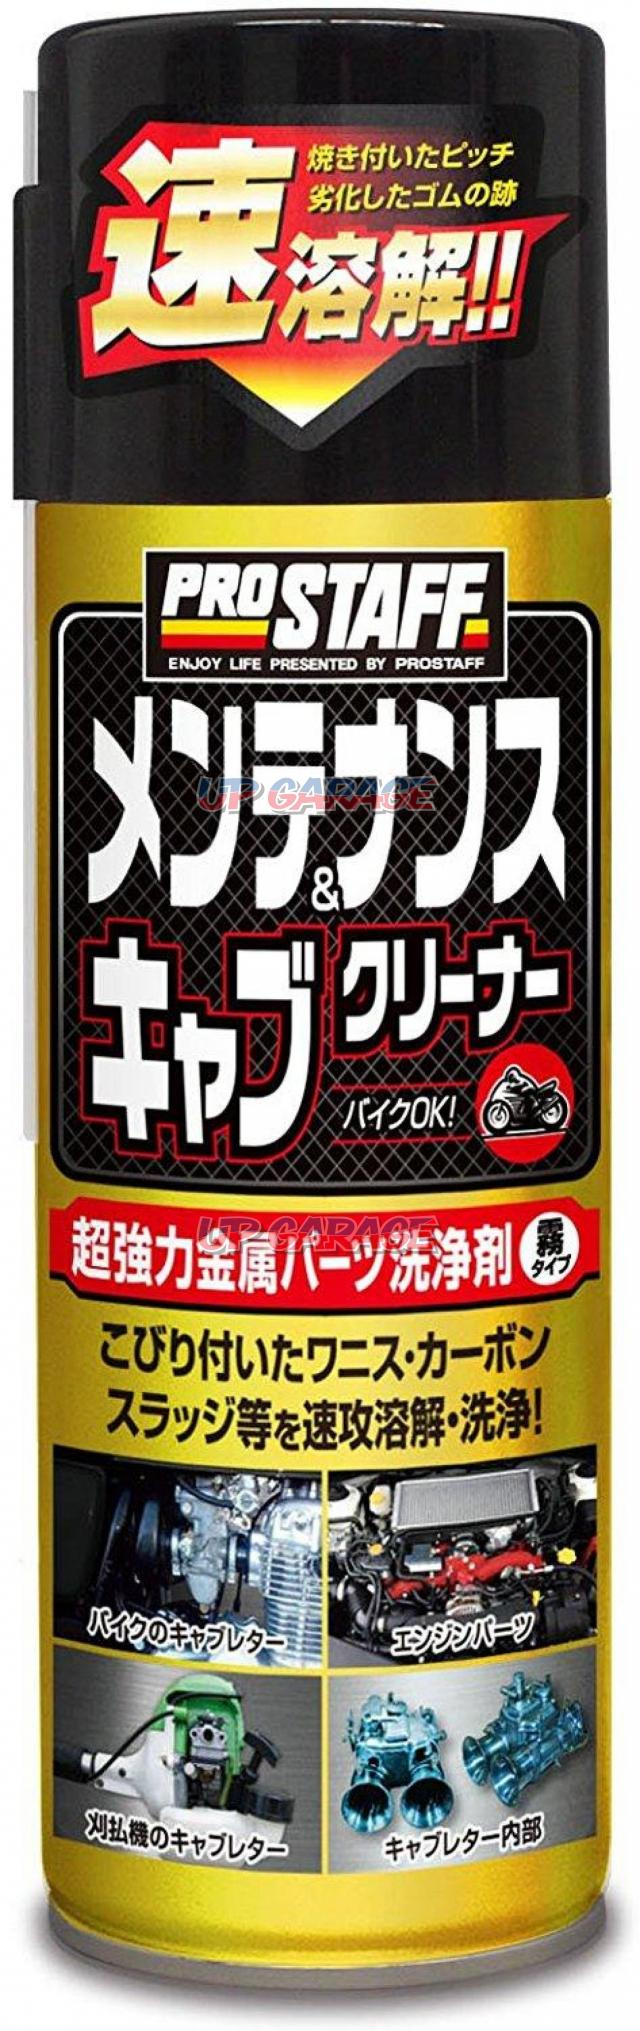 PROSTAFF D-69 Maintenance and cab cleaner 420 ml 750 yen (excluding tax)-01